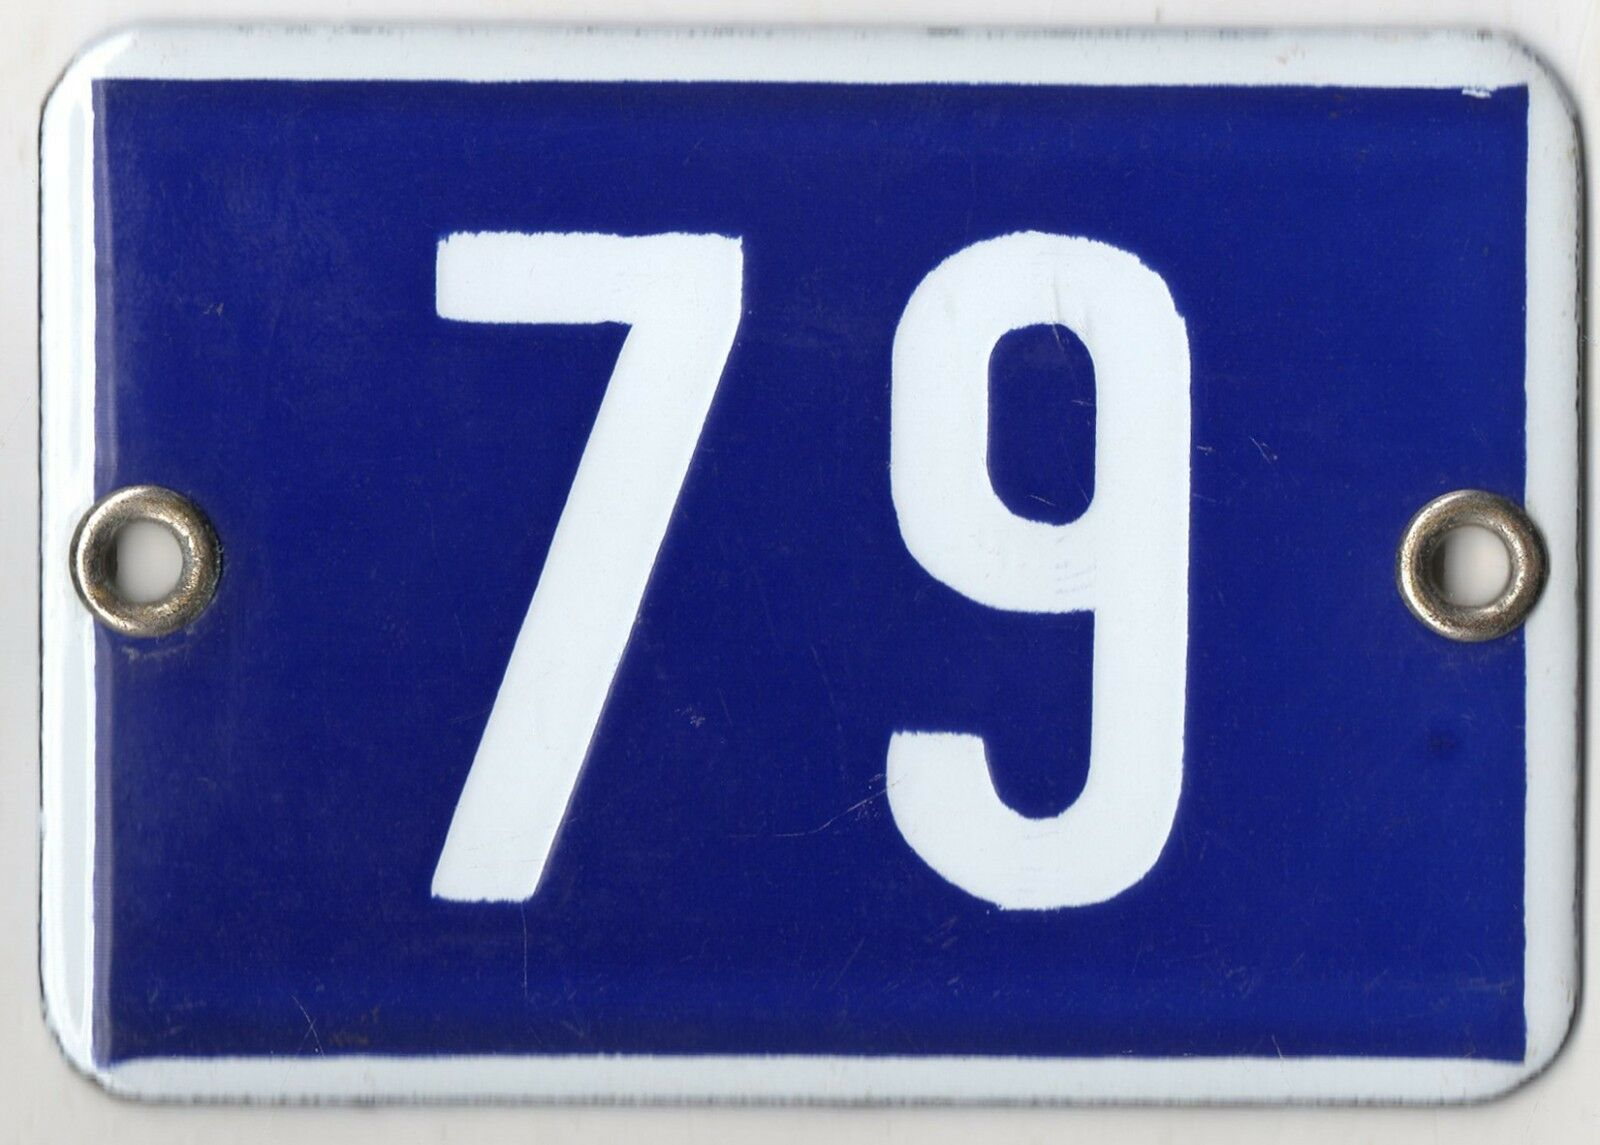 Cute old blue French house number 79 door gate plate plaque enamel metal sign